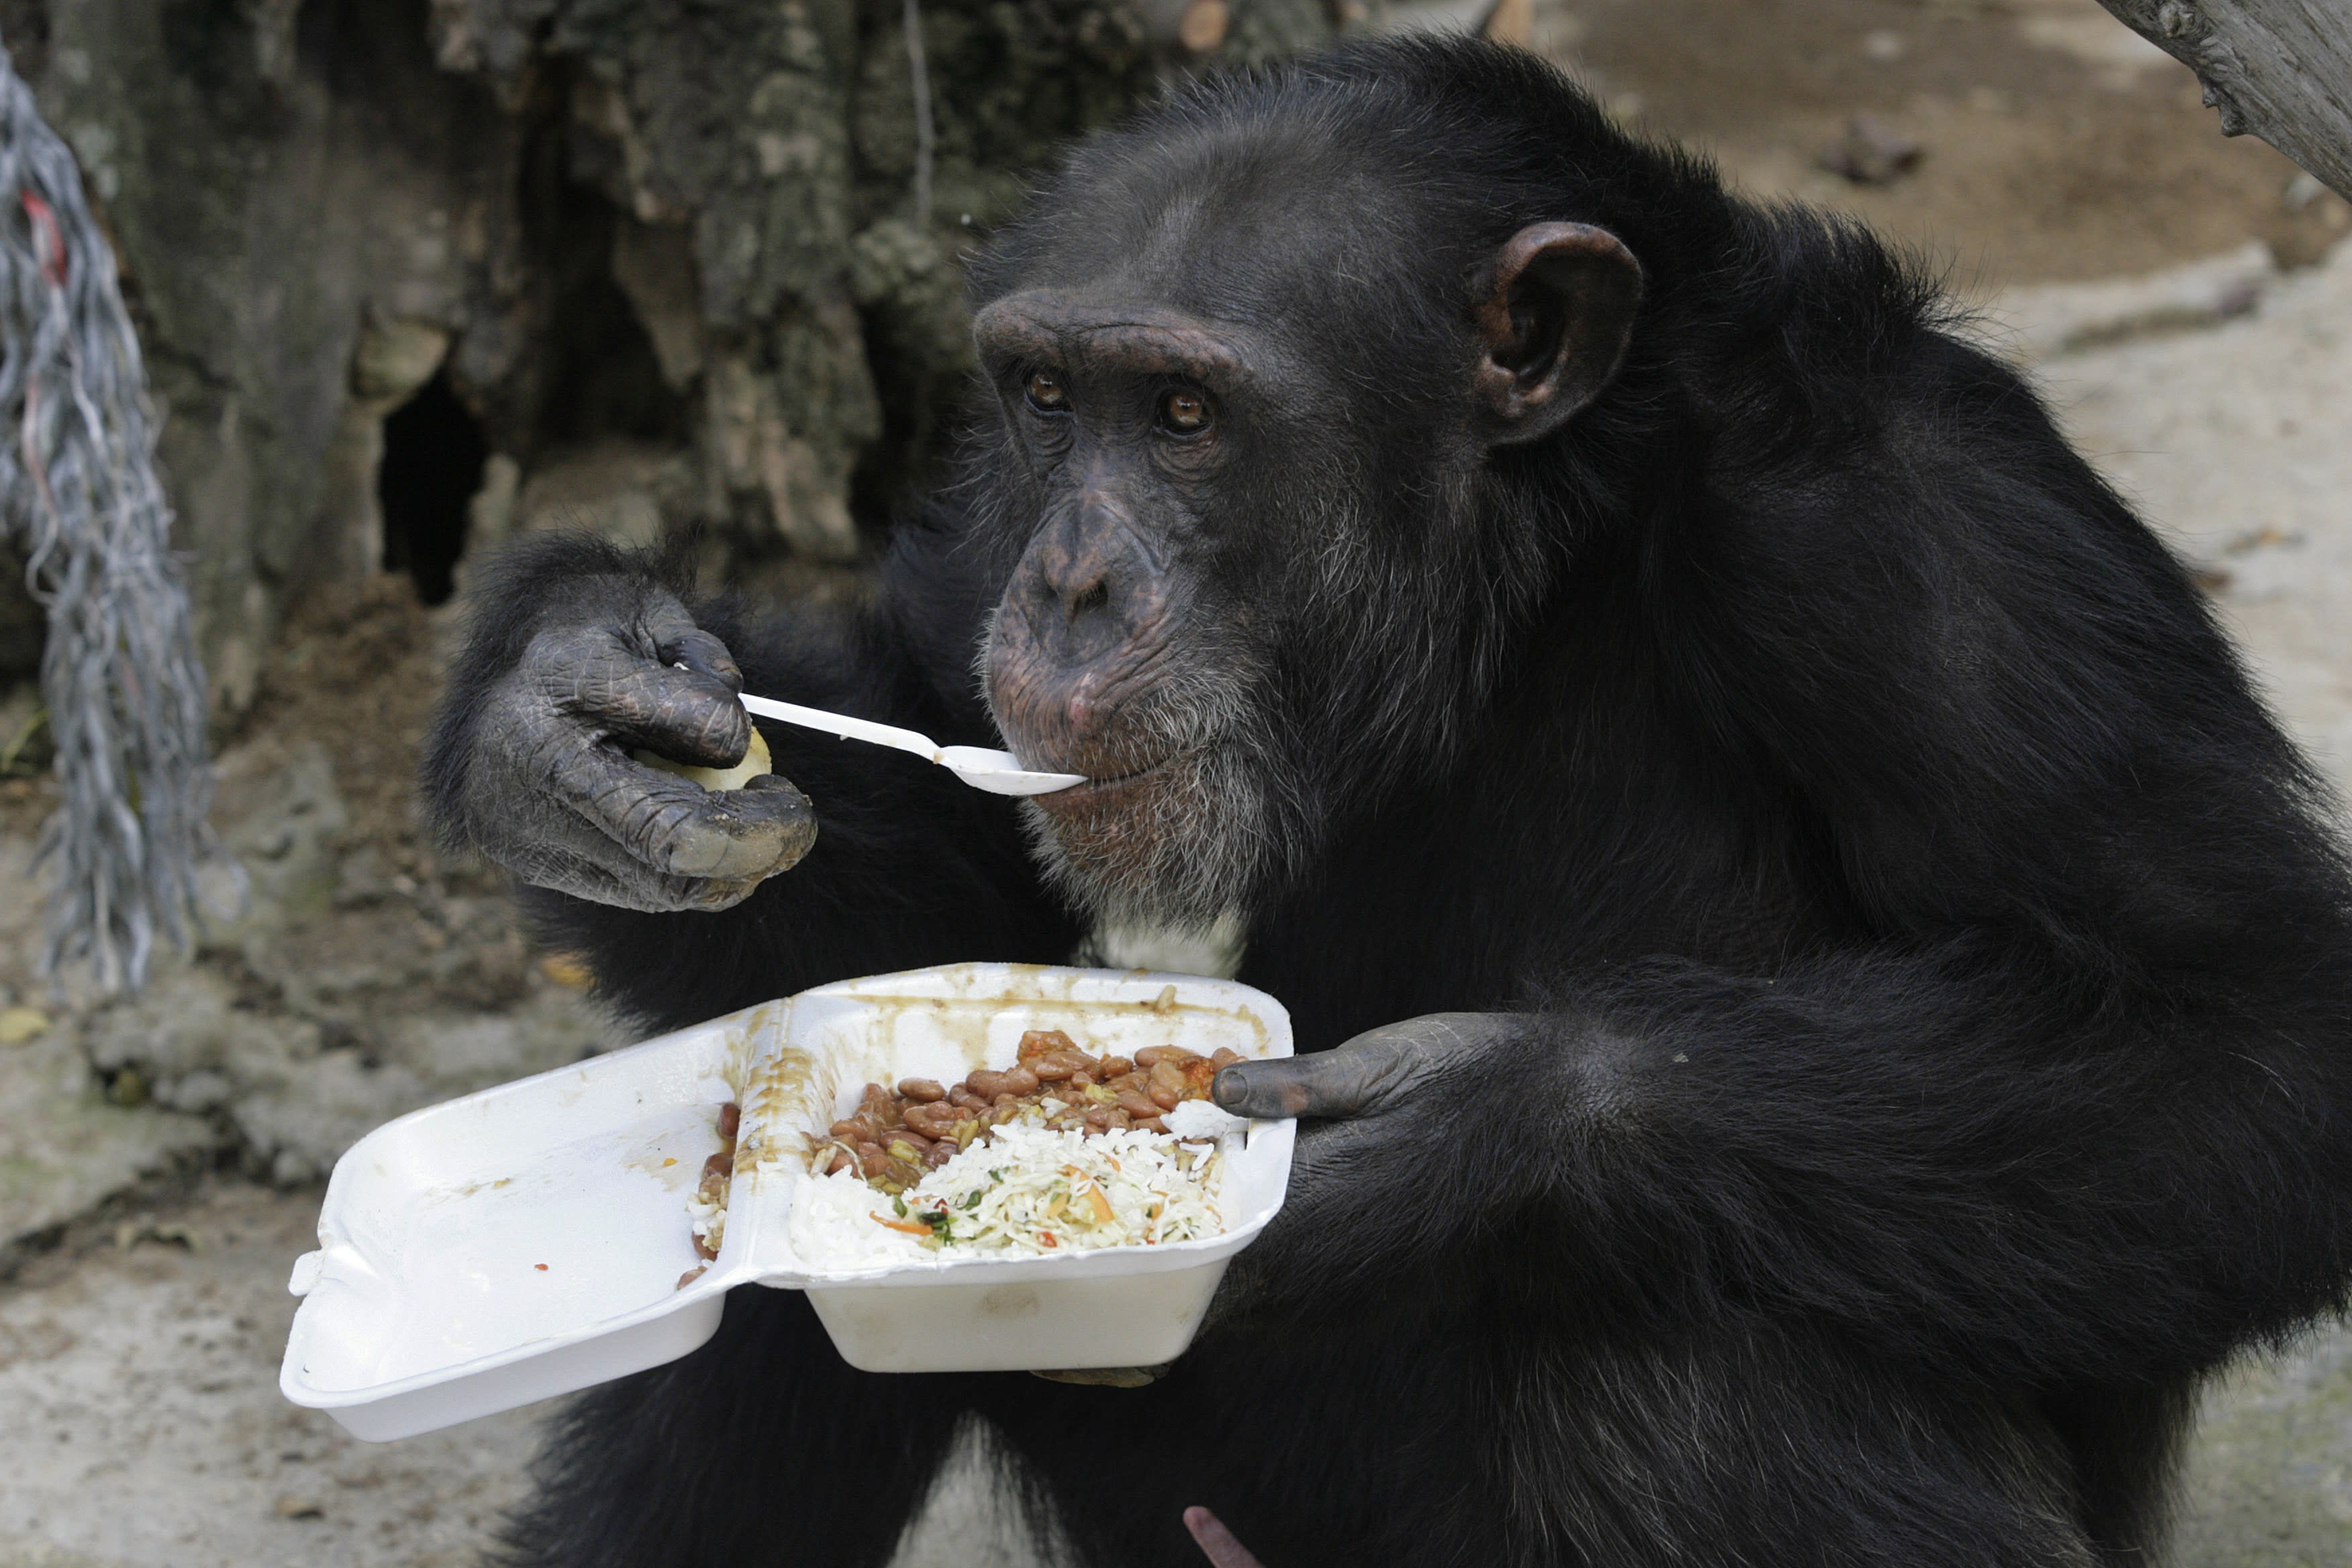 Are Chimps Entitled to Human Rights? NY Court to Decide